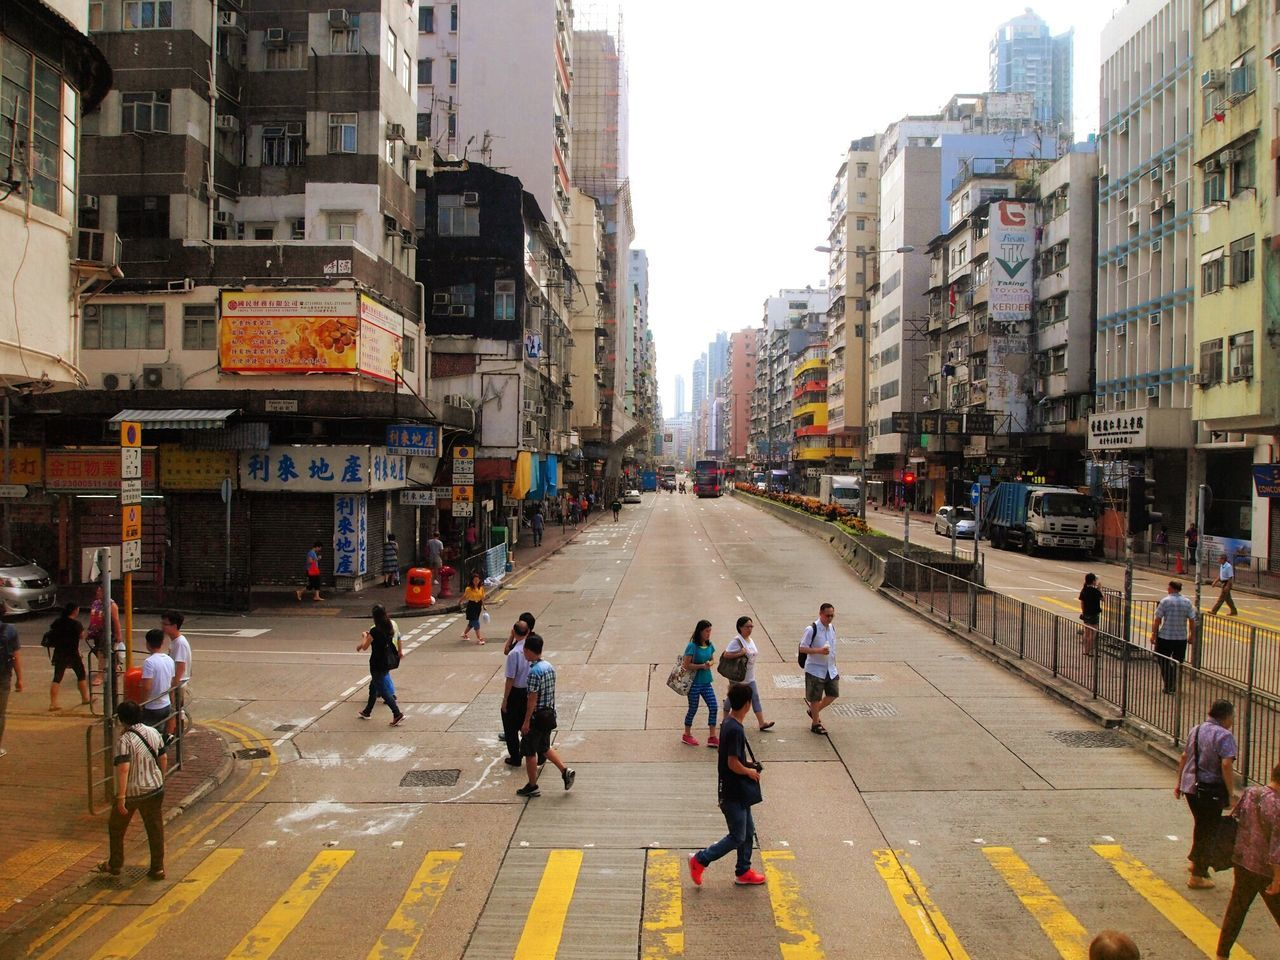 City Street Building Exterior Neighborhood Bus View Front Seat HongKong Adapted To The City